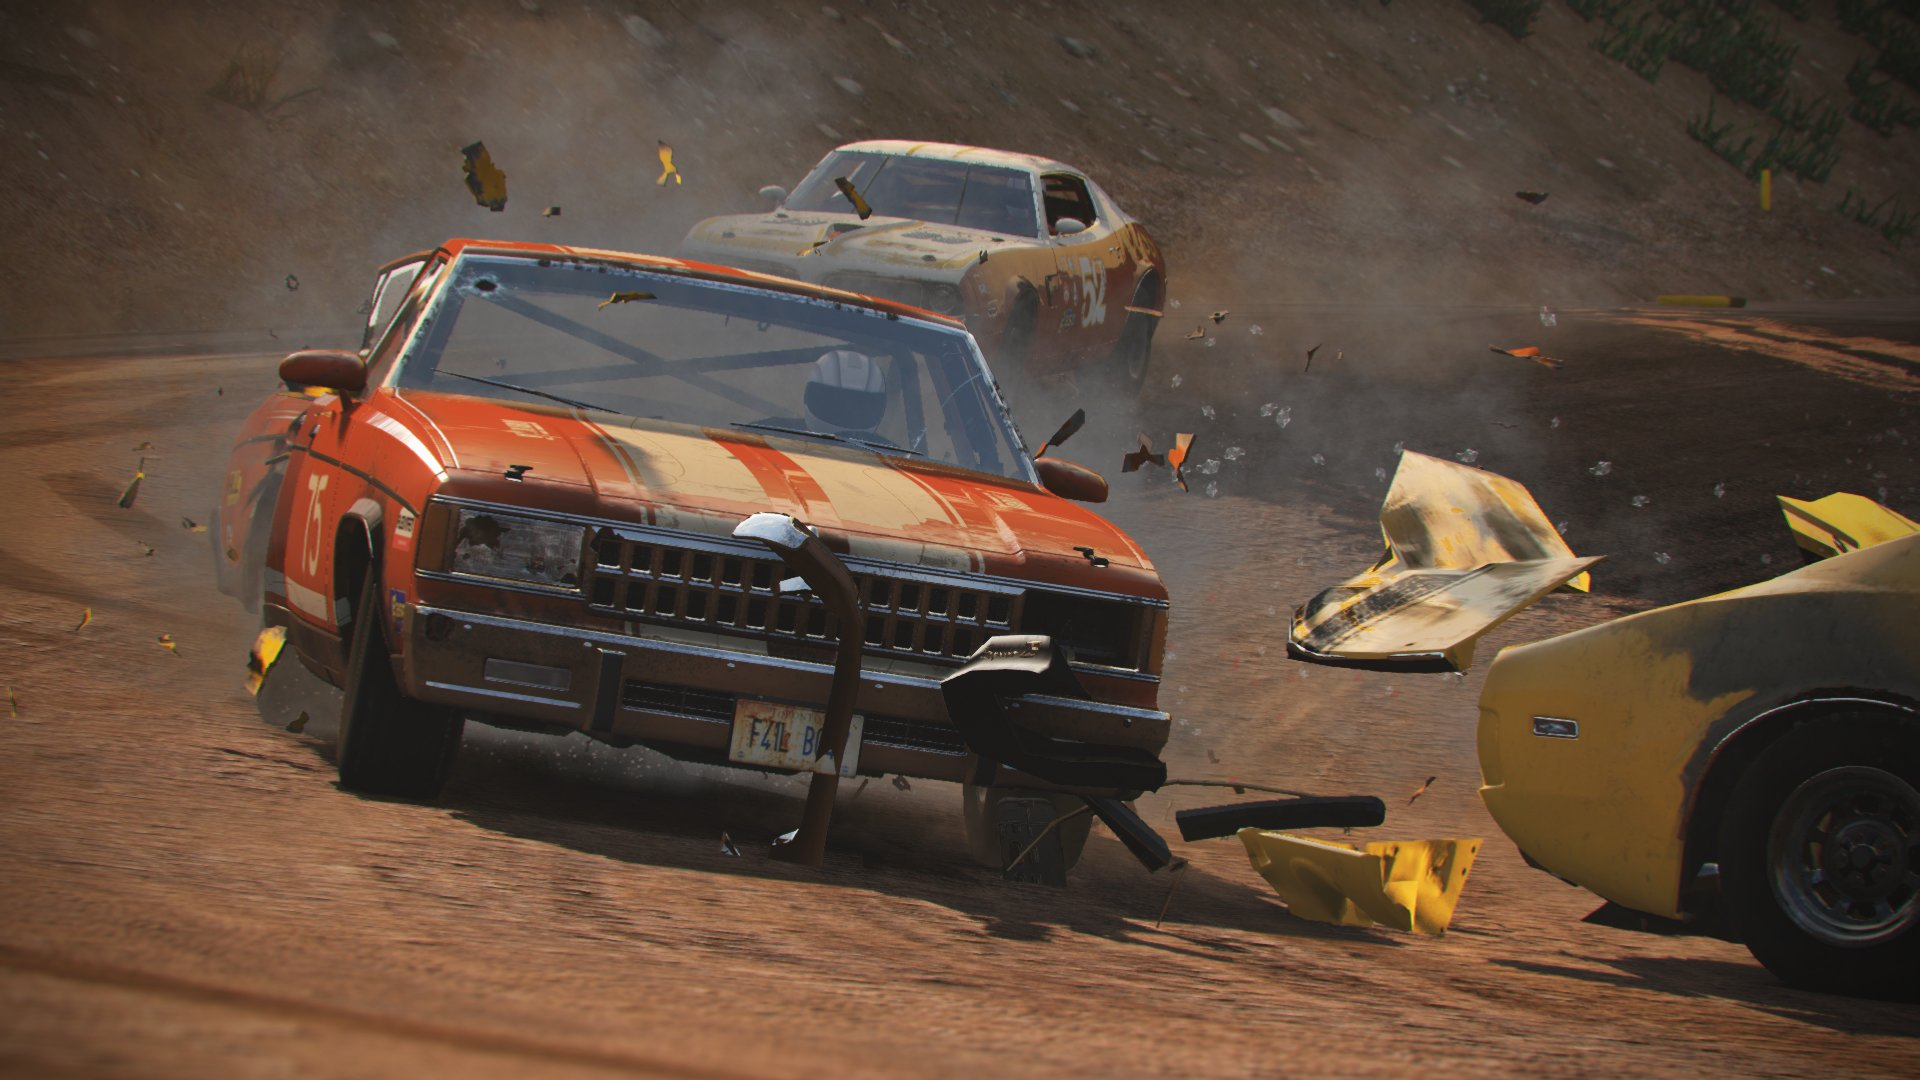 Wreckfest Next Car Game s New Update and Title Inside Sim Racing